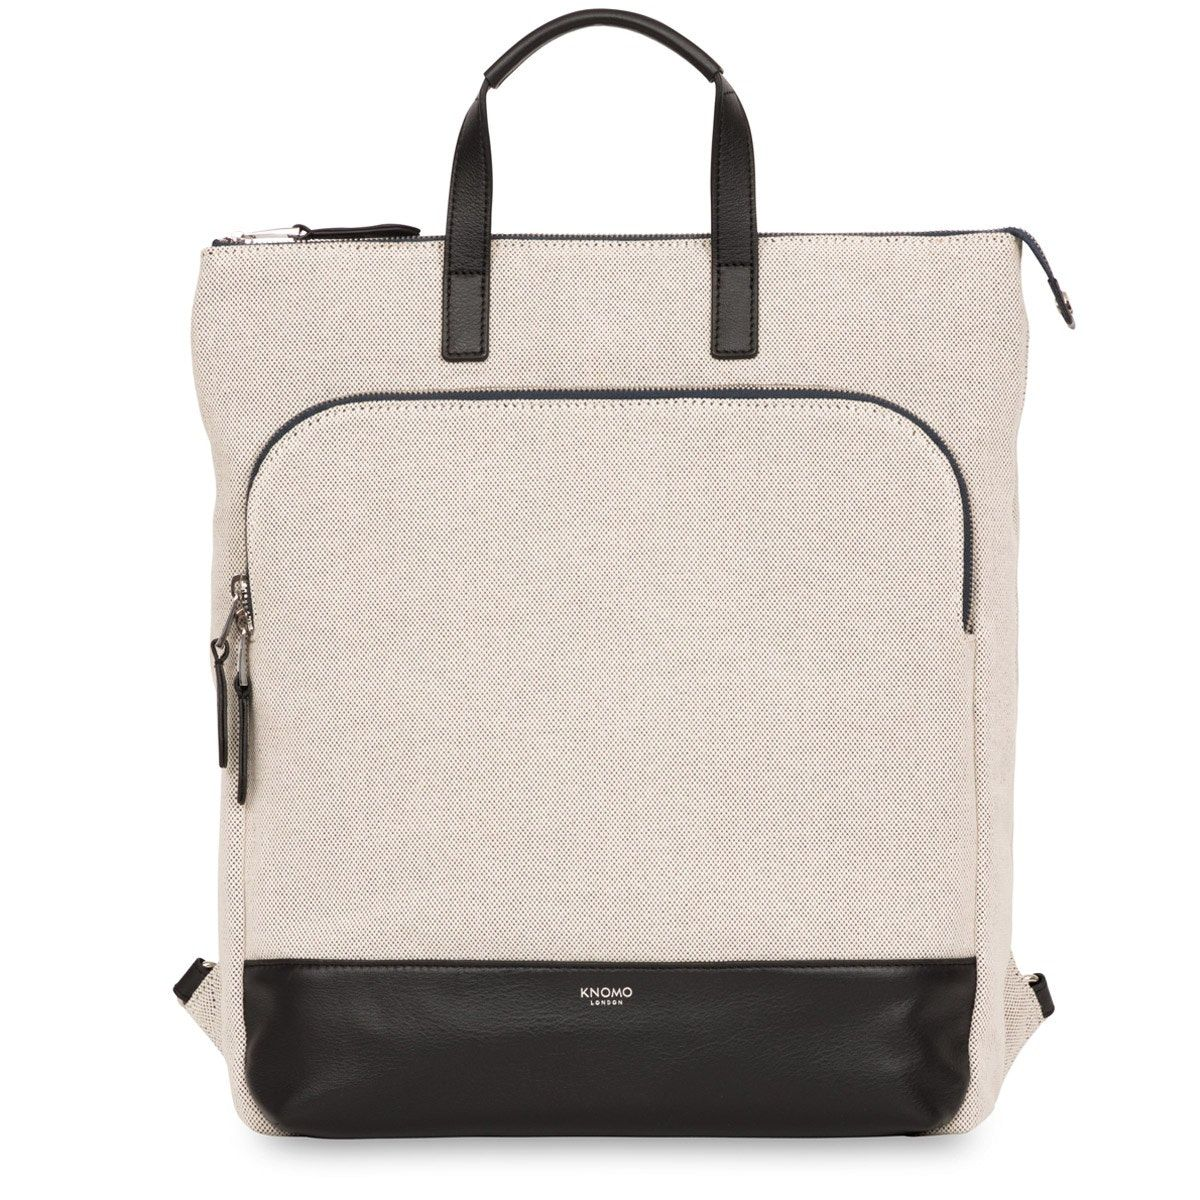 Laptop rugzak Knomo Harewood Laptop Rugzak Tote Canvas 15 inch